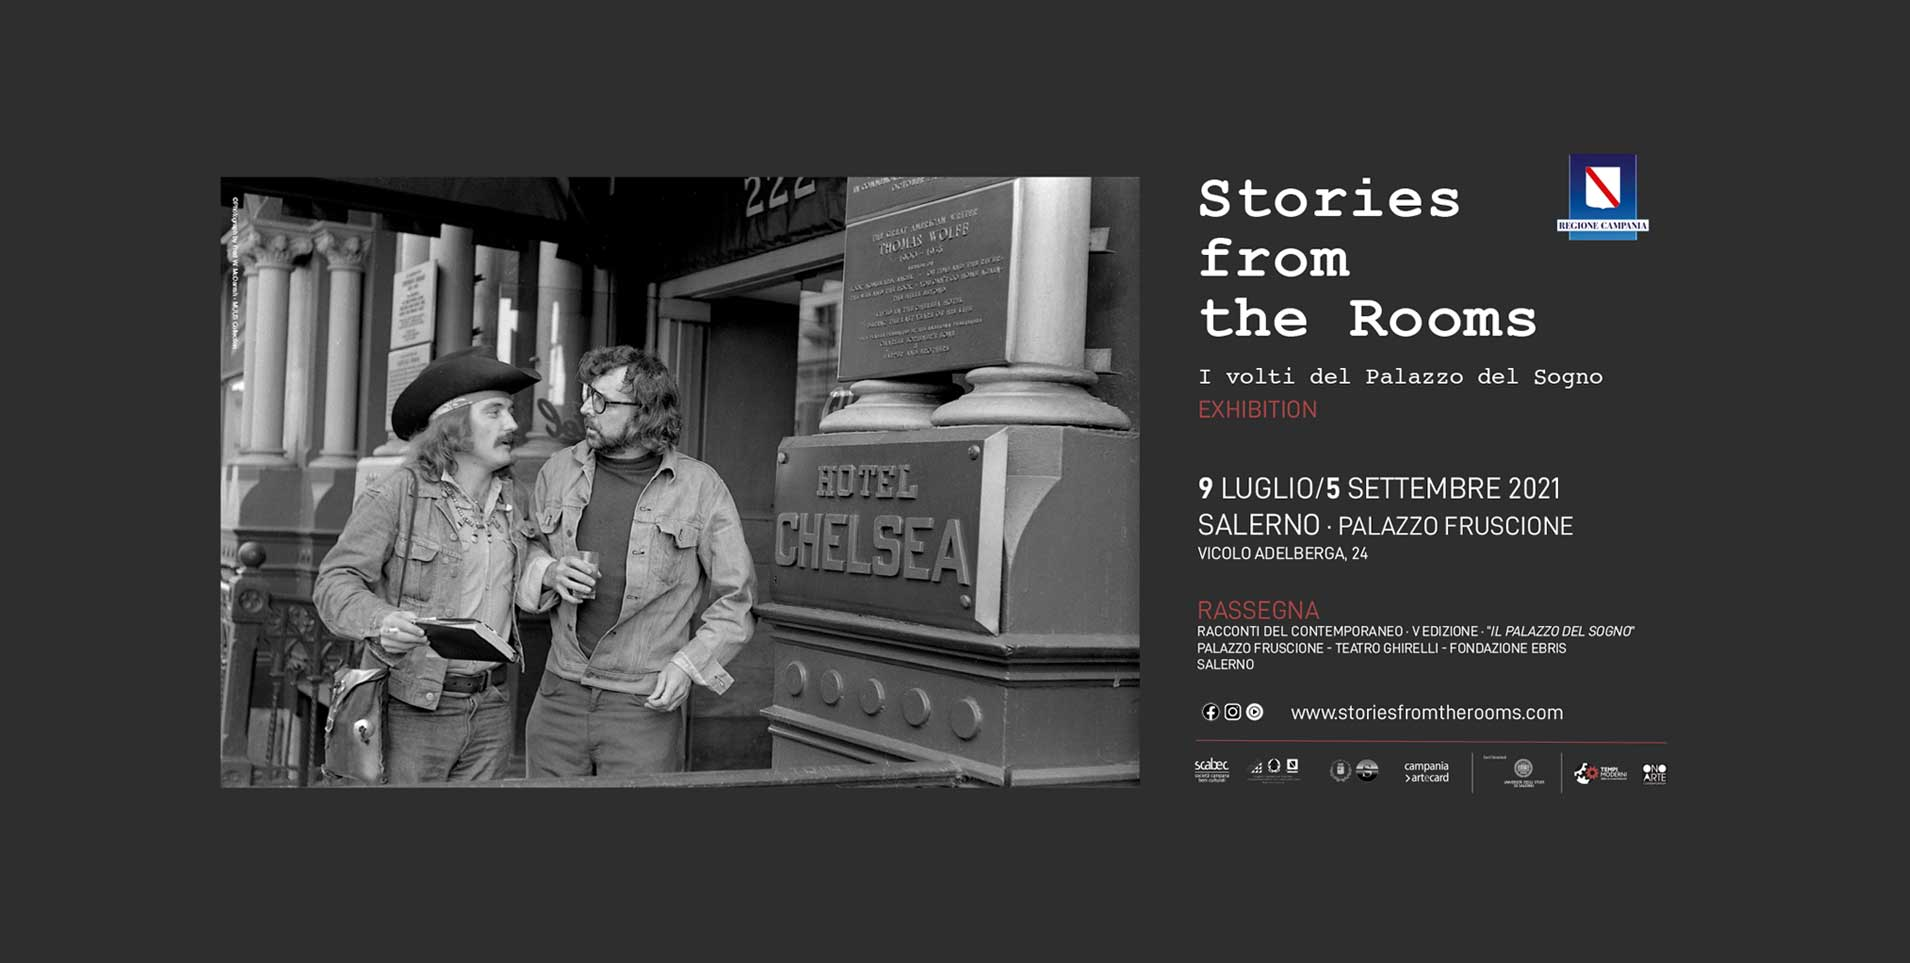 Manifesto V edizione Stories from the rooms